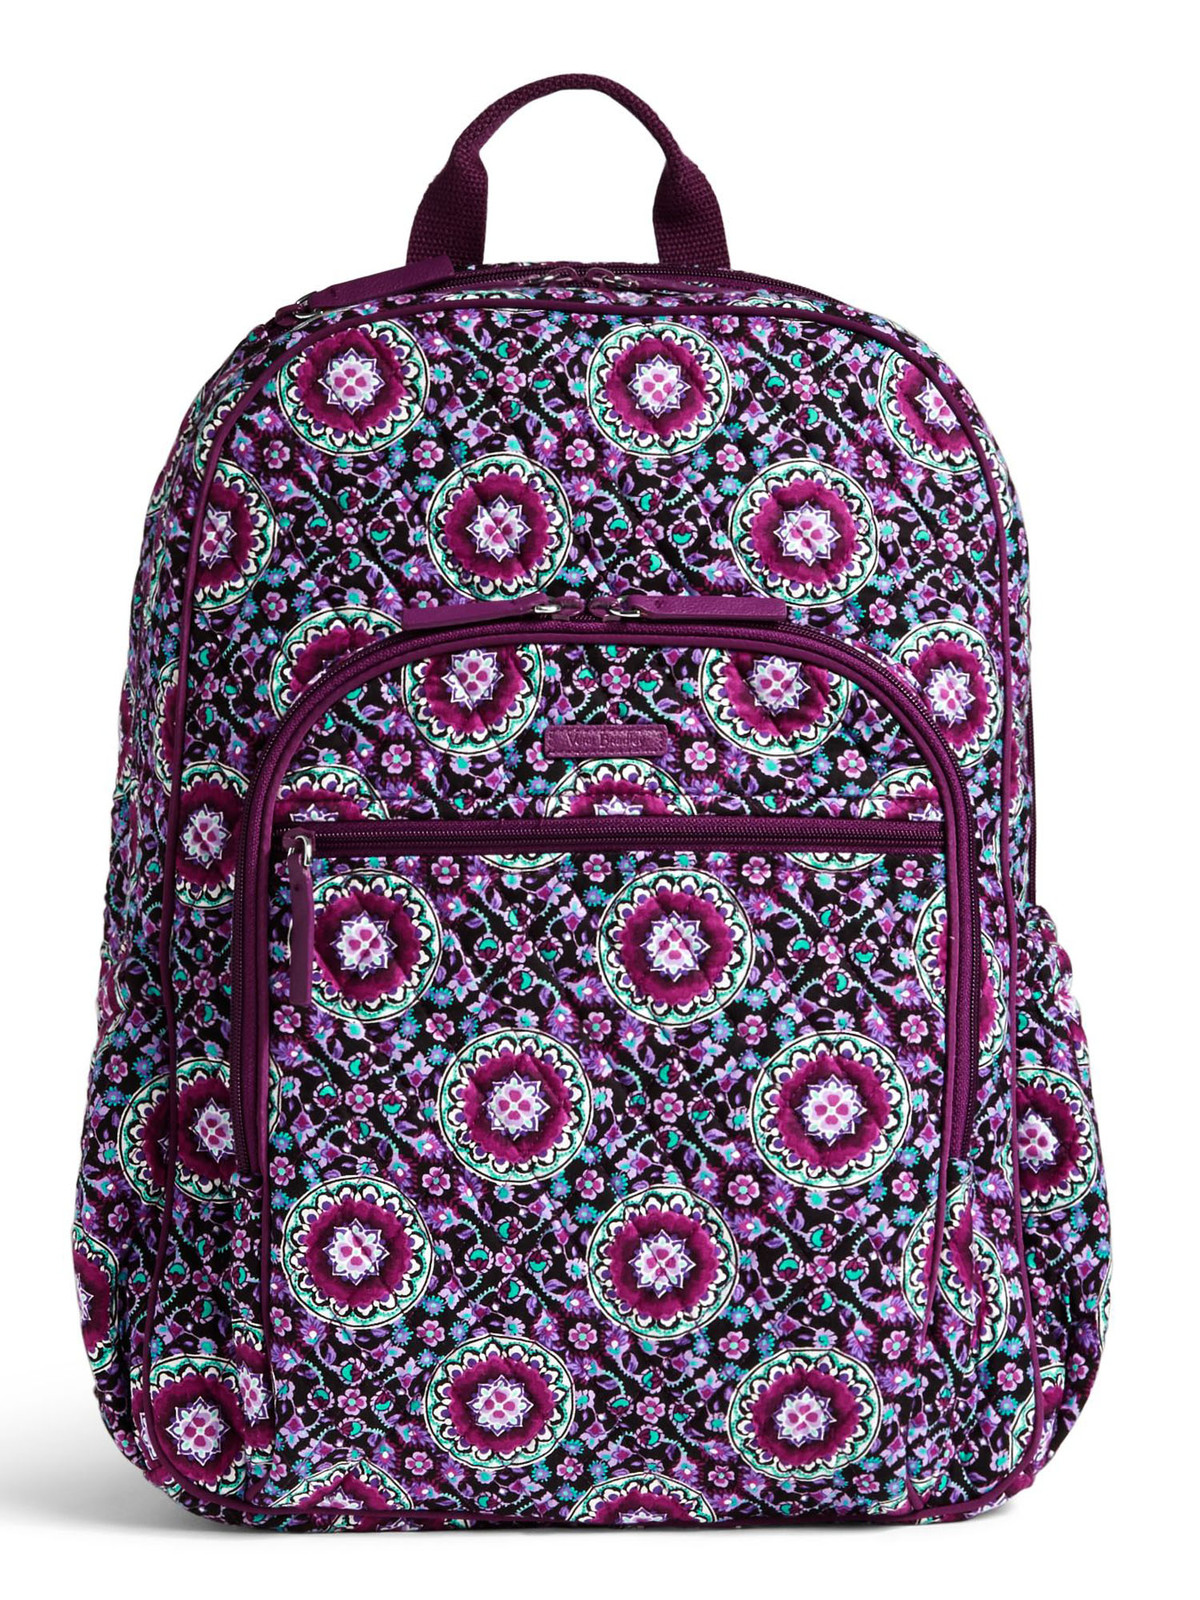 Vera Bradley Signature Cotton Campus Tech Backpack, Lilac Medallion